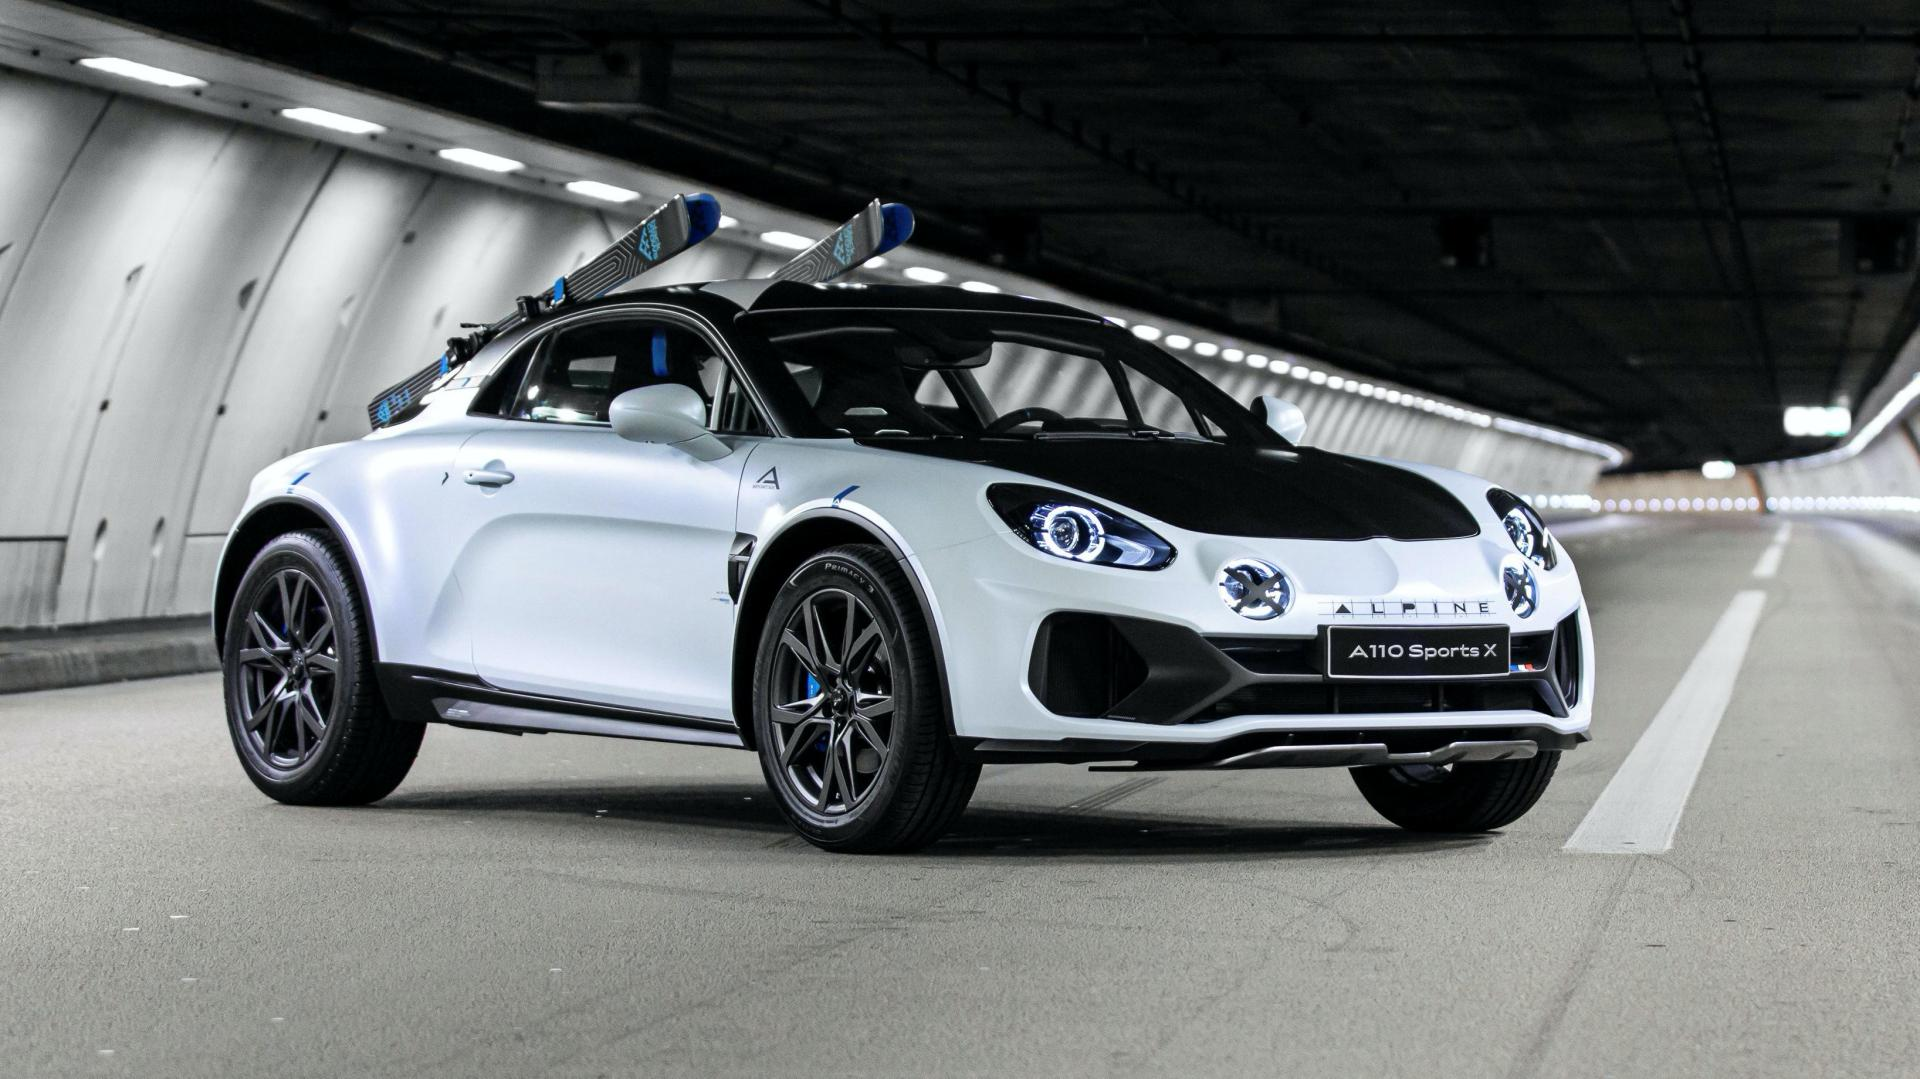 Alpine A110 SportsX show car